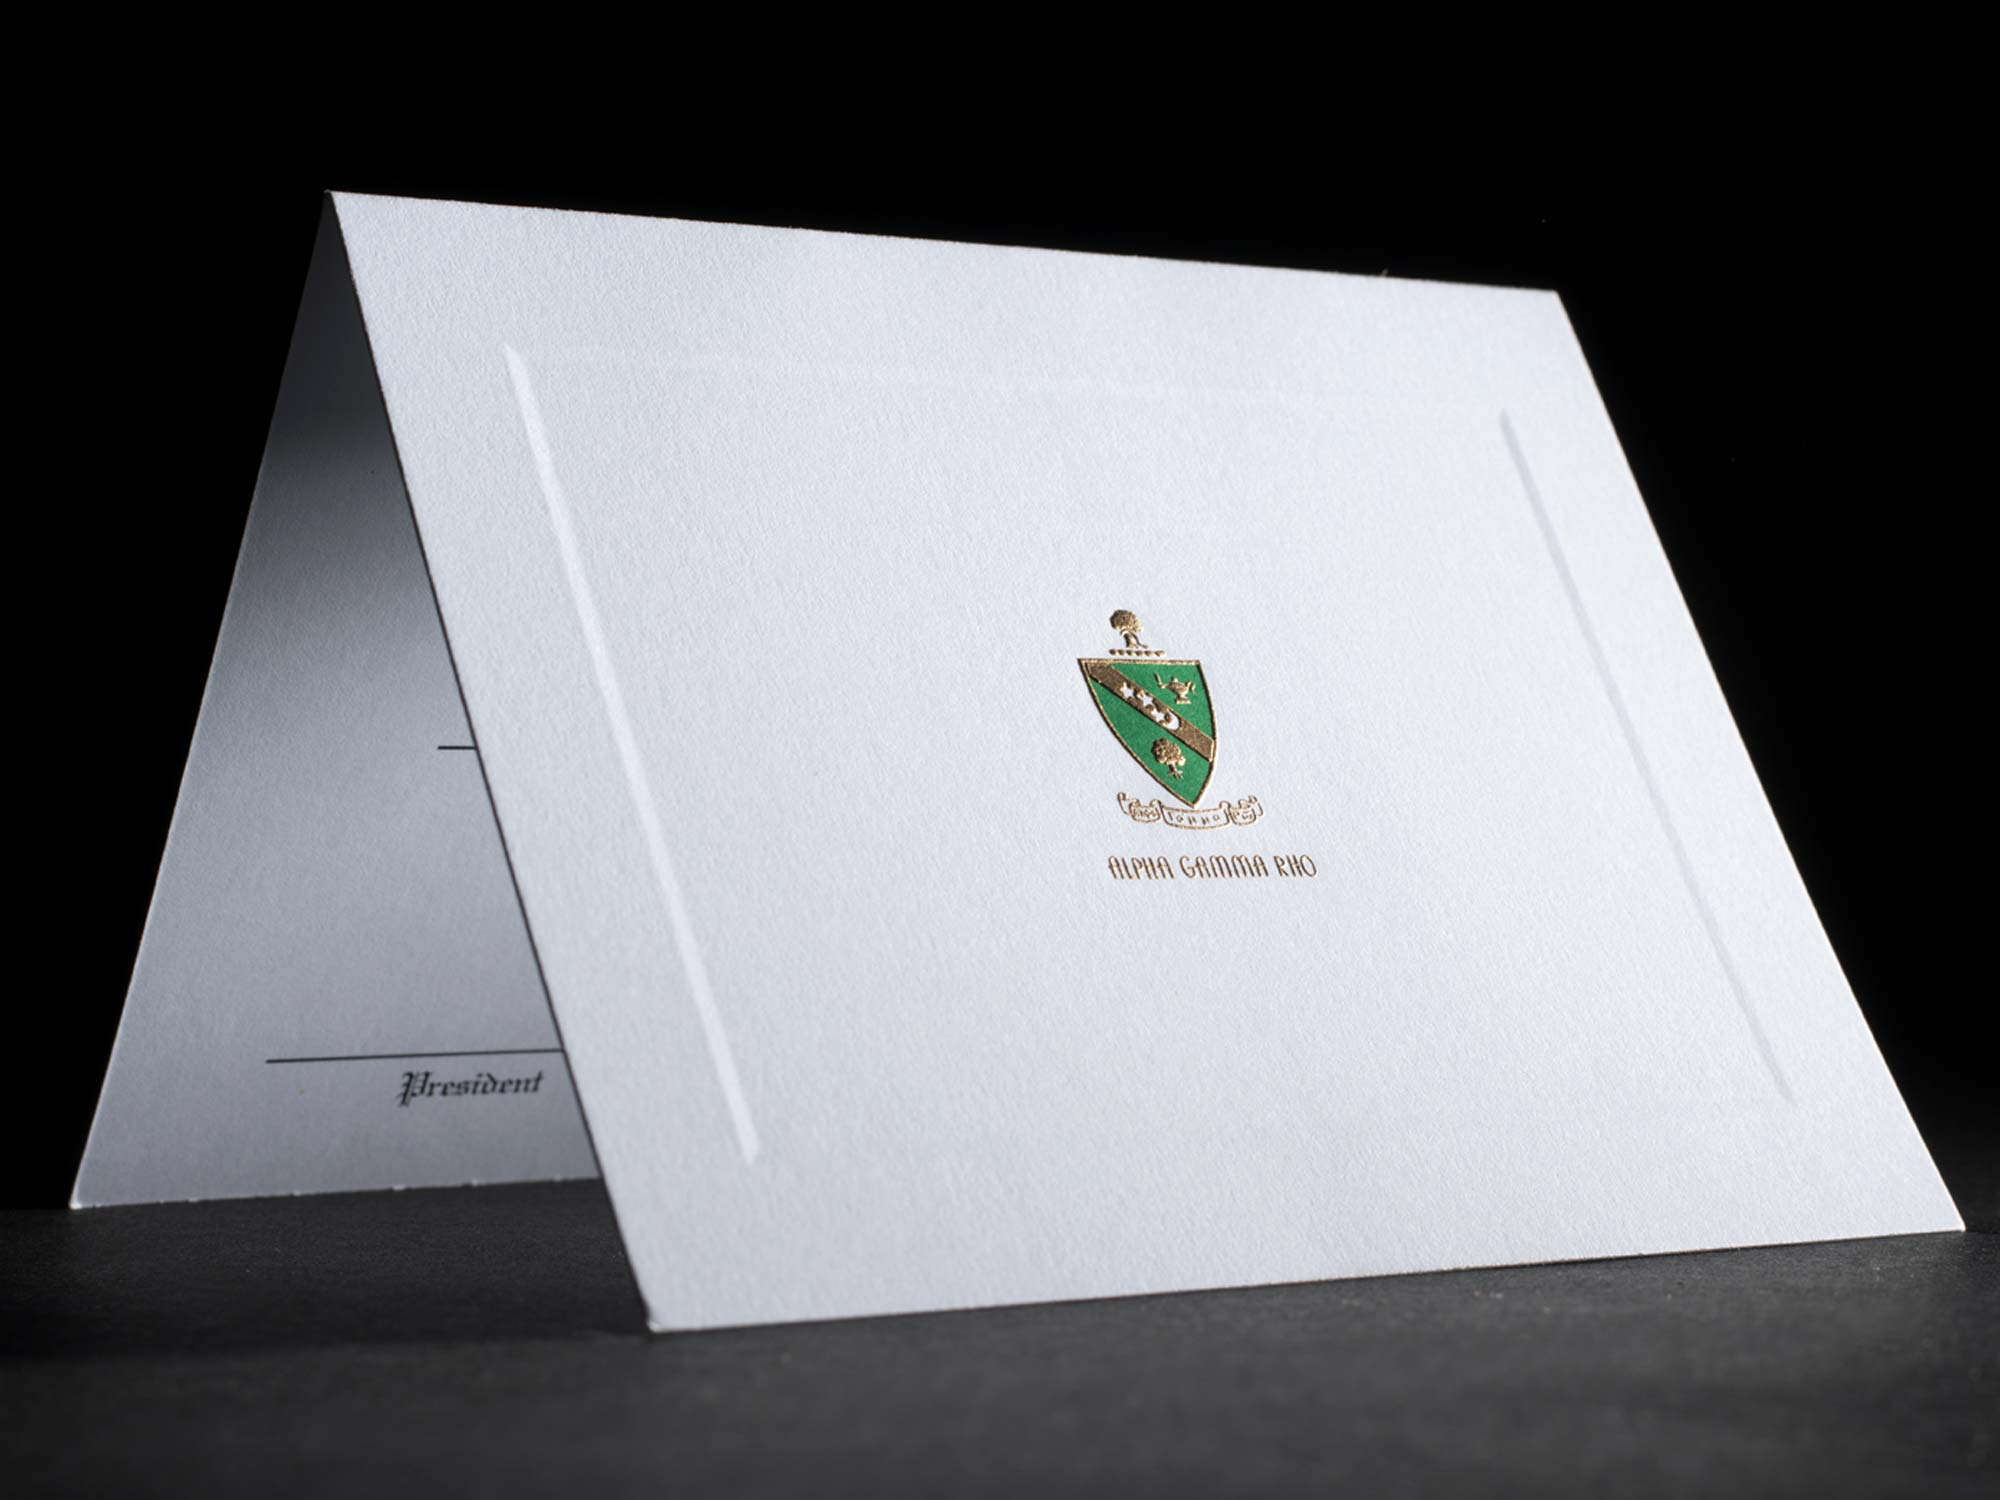 Engraved Bid Day Cards Alpha Gamma Rho